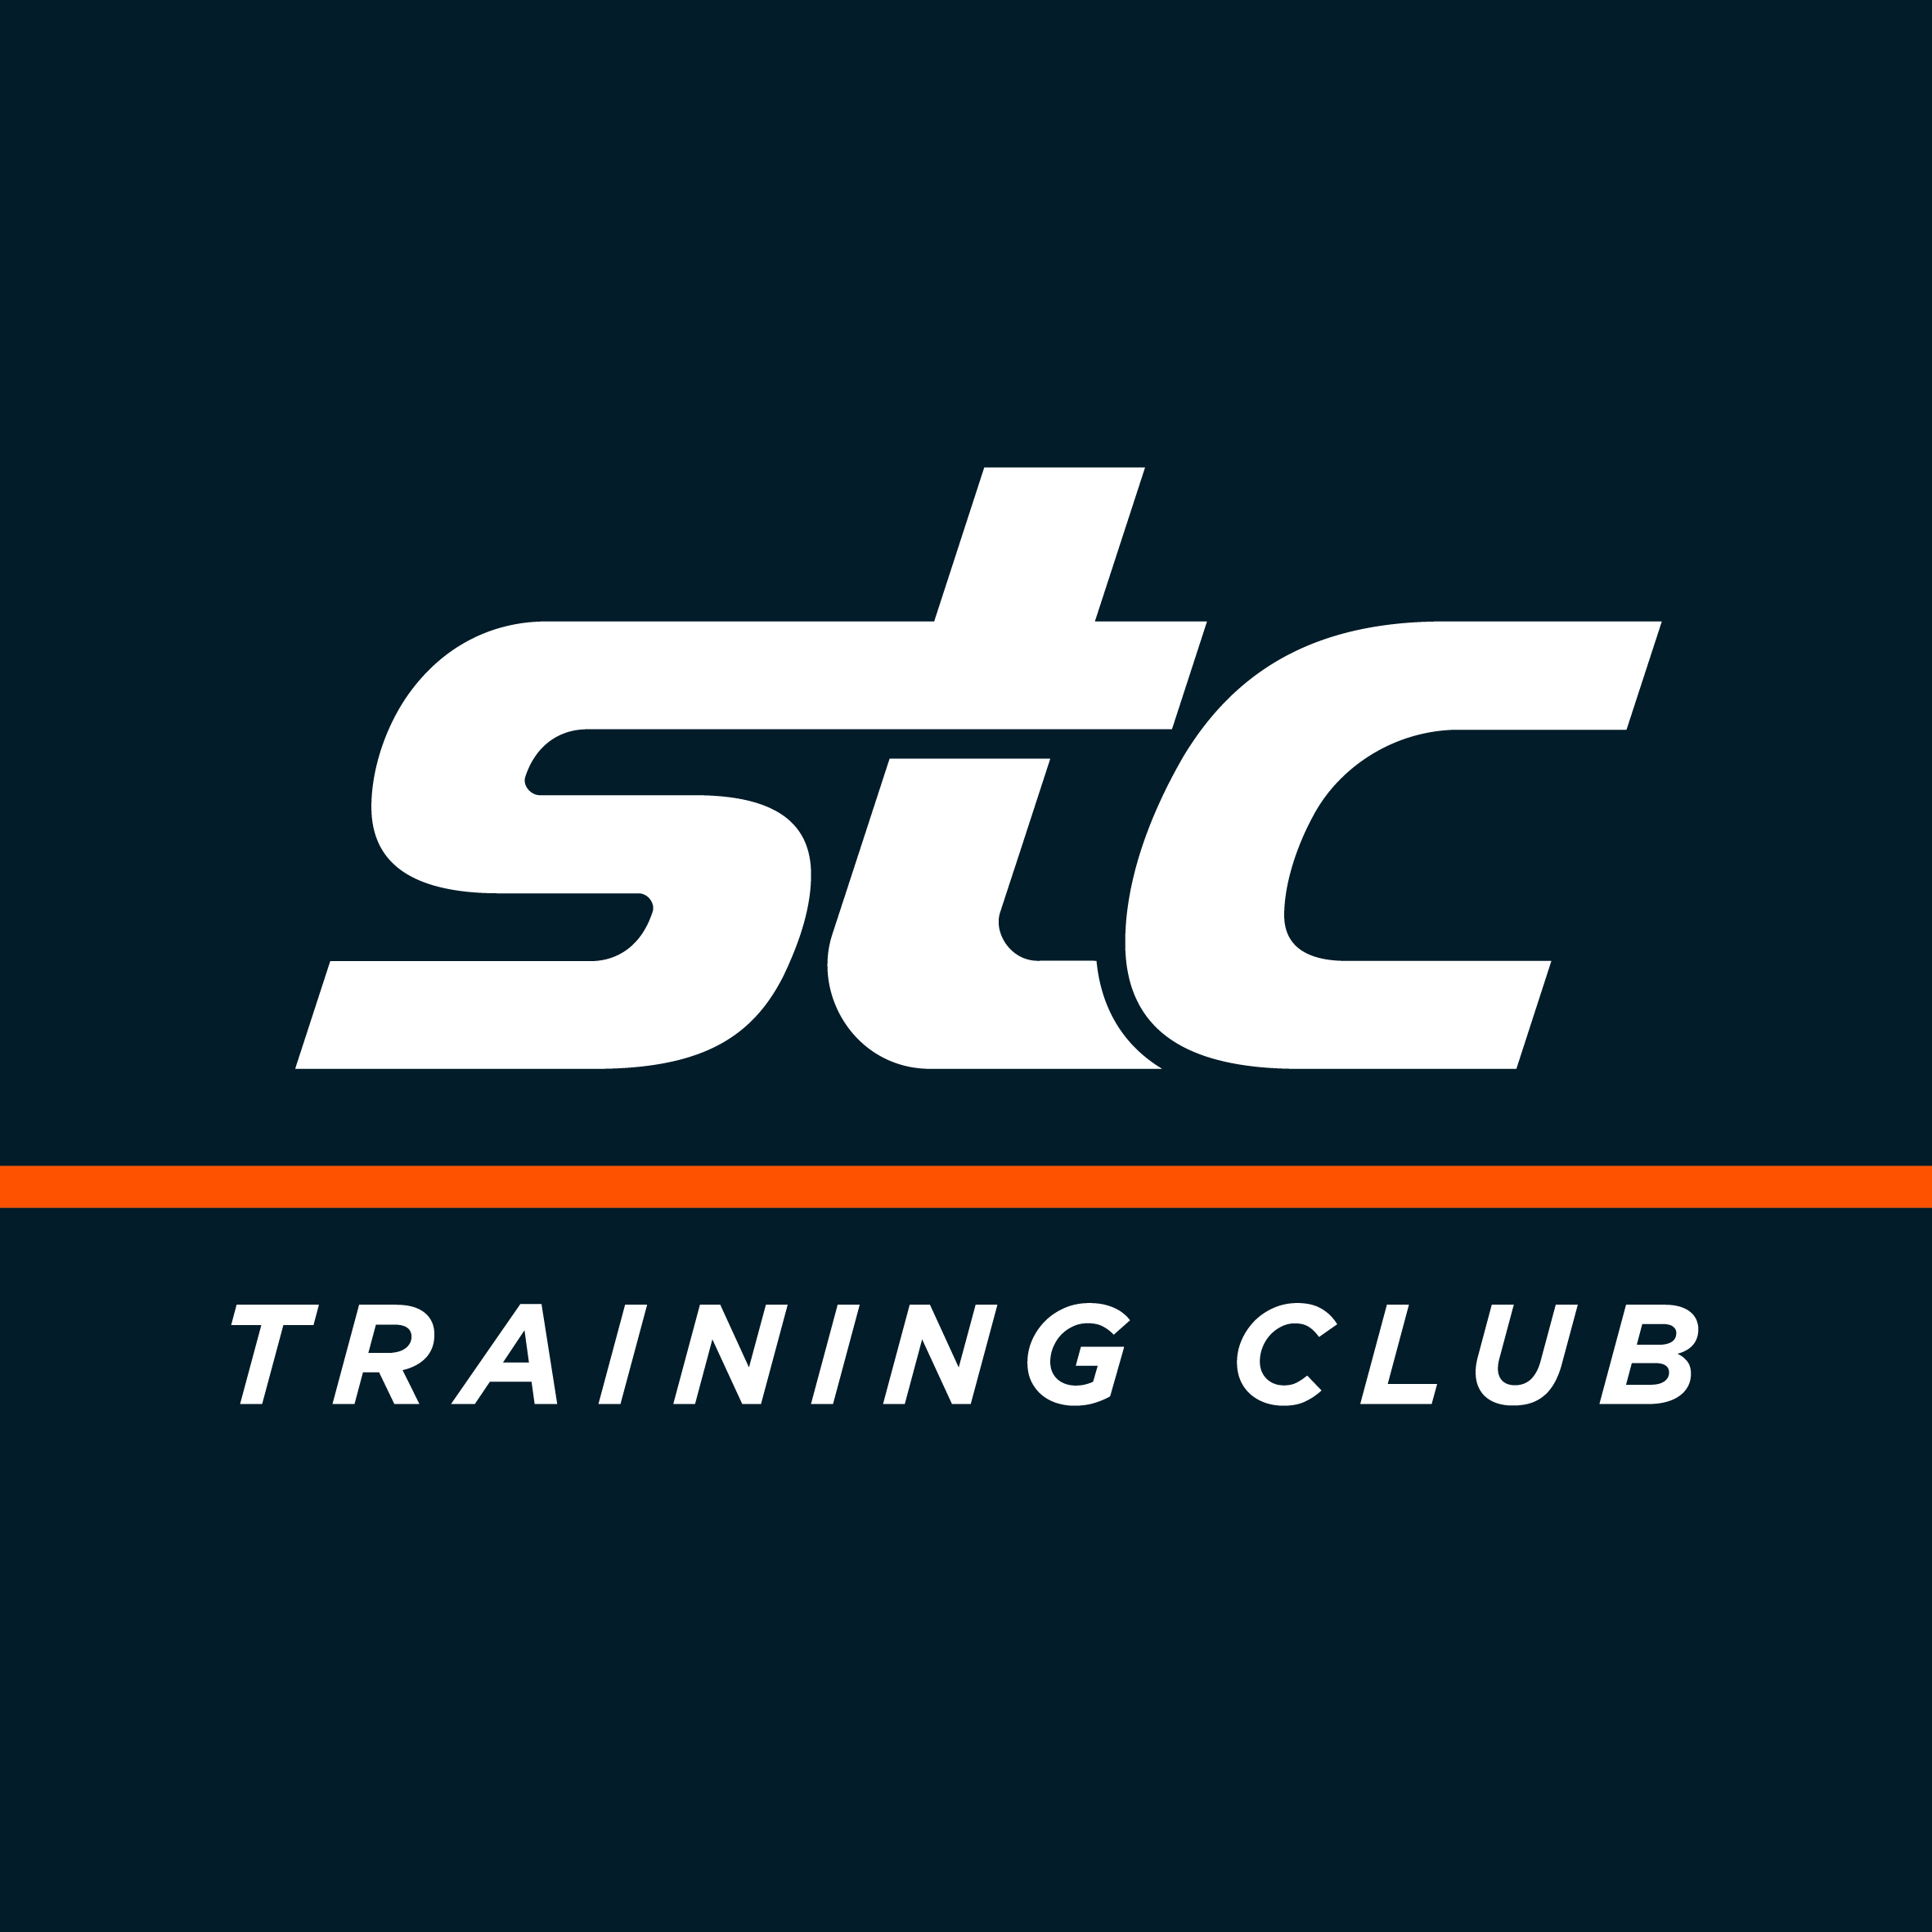 STC Training club